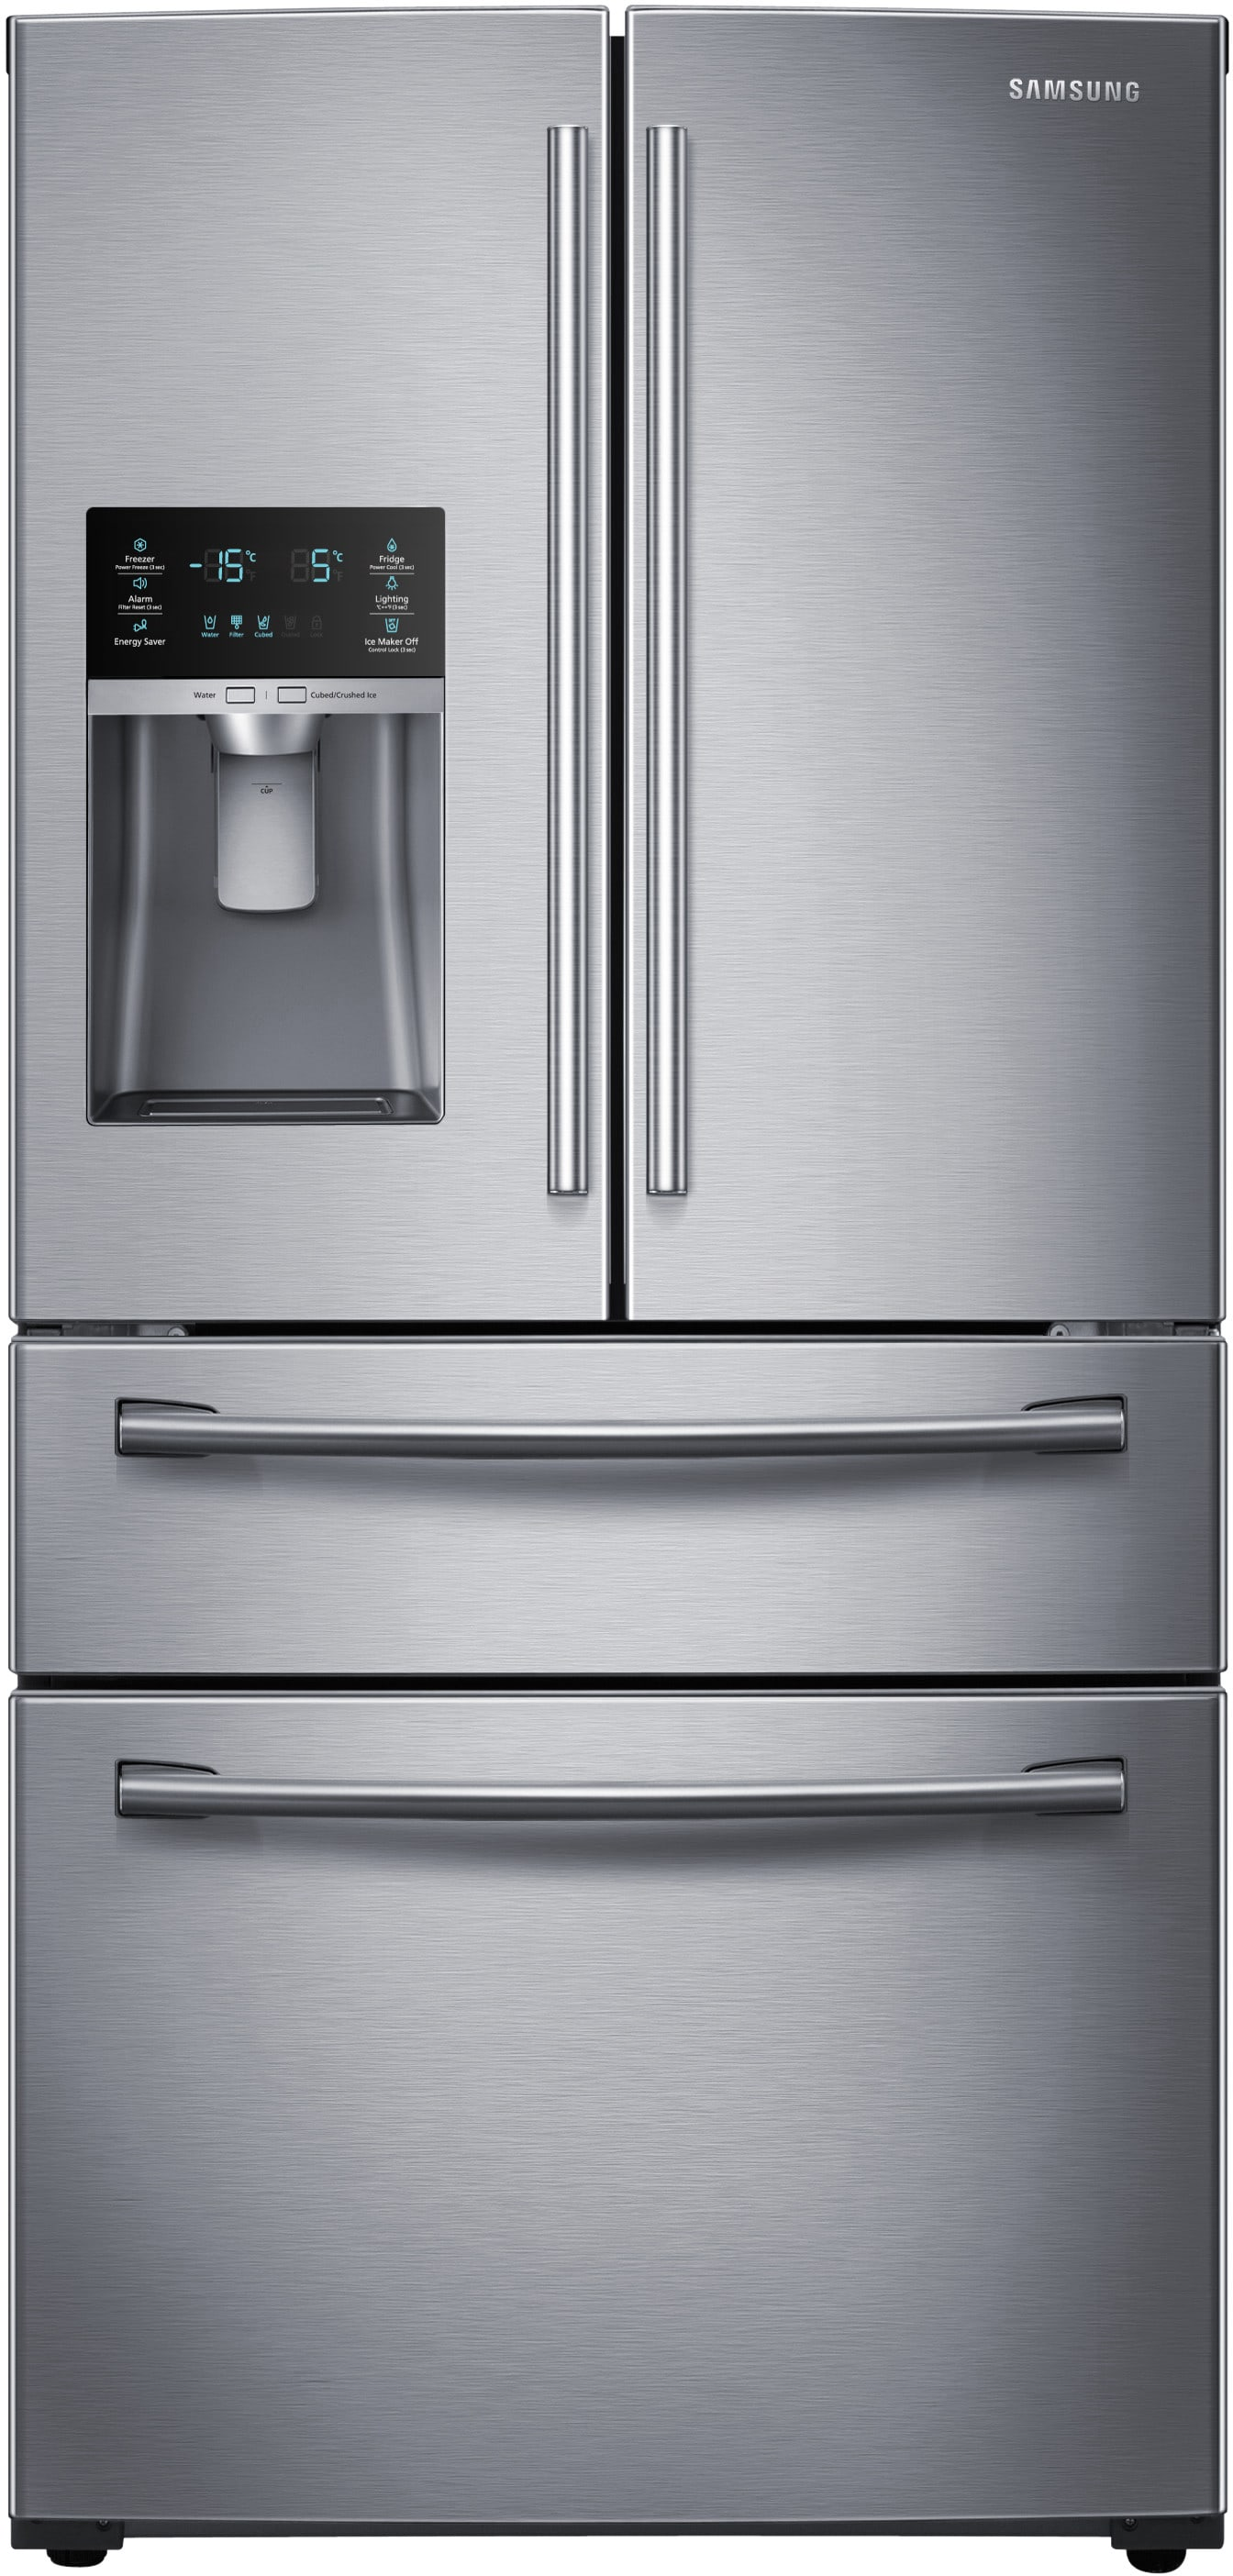 haier 28 in w 15 cu ft french door refrigerator in stainless steel. haier 28 in w 15 cu ft french door refrigerator stainless steel o